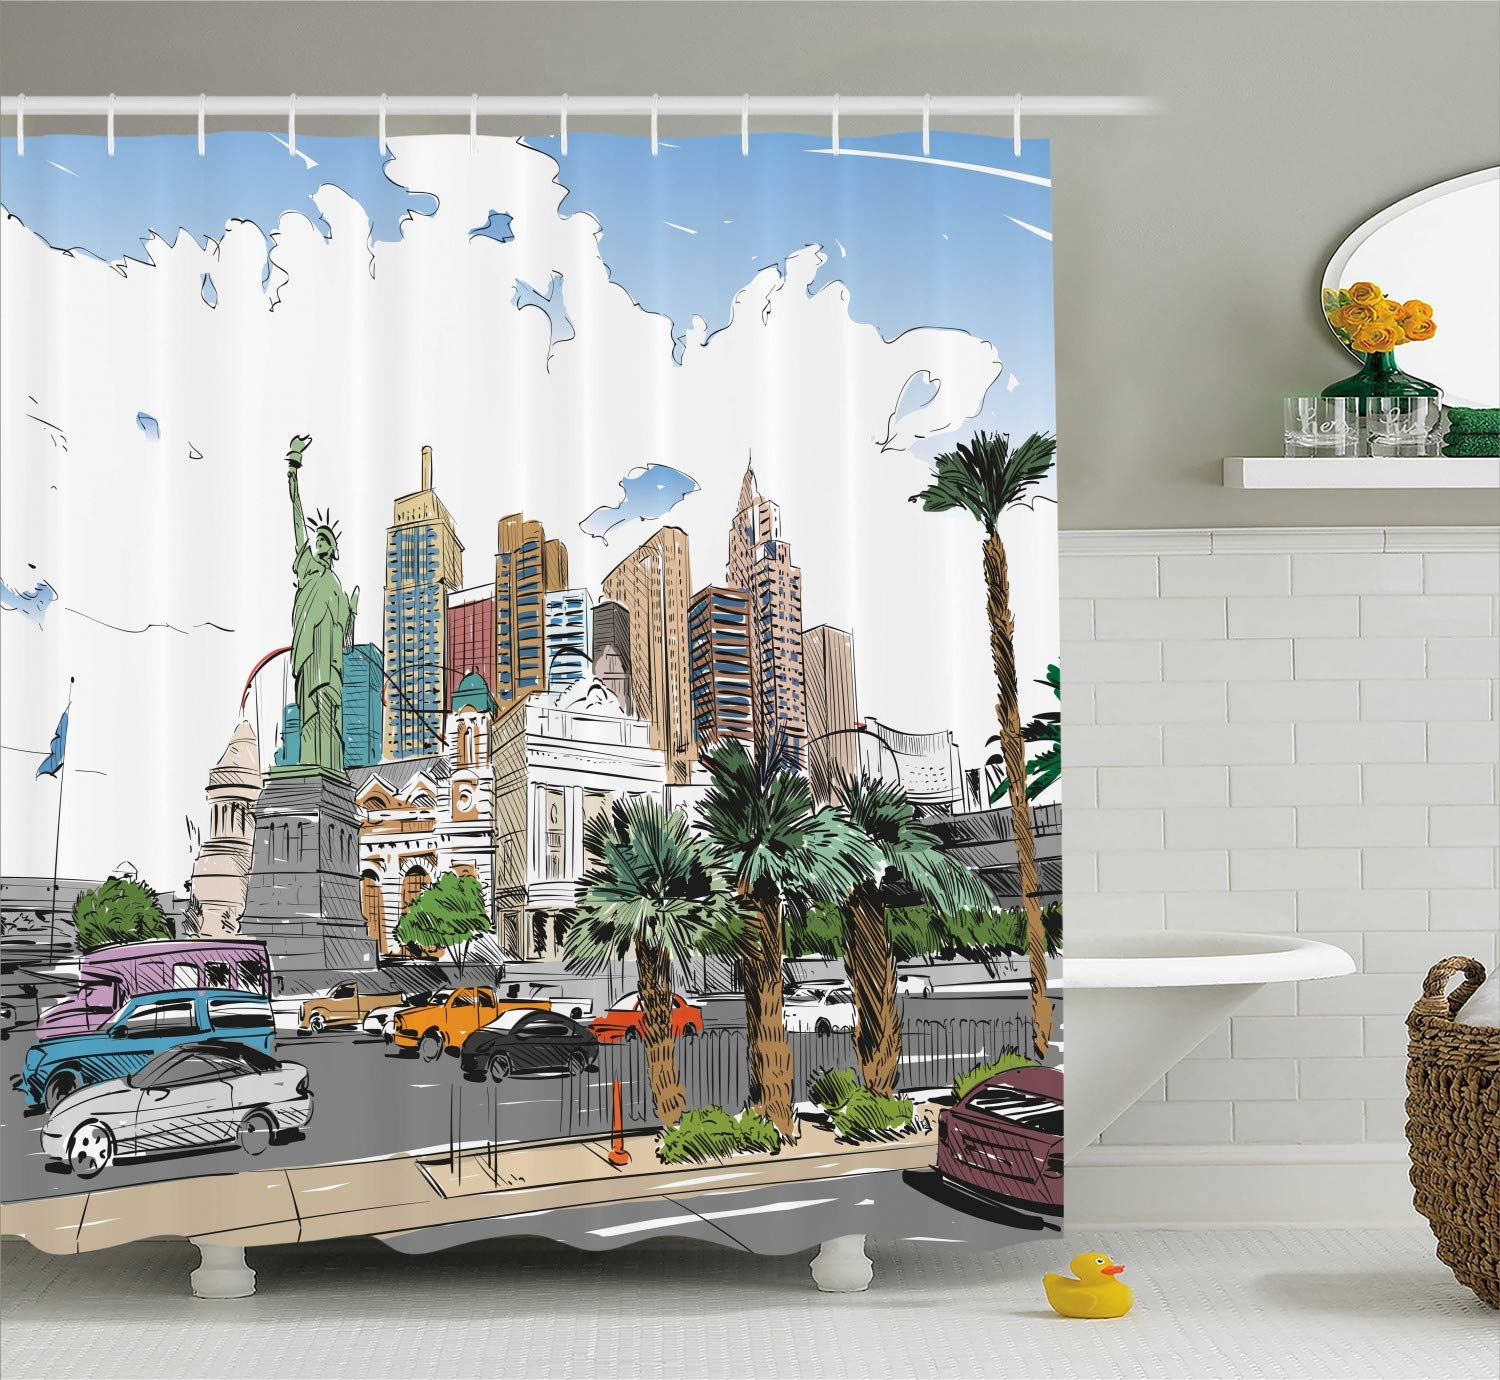 Printing USA Shower Curtain, Hand Drawn Las Vegas City Nevada Street Sketch Buildings Statue of Liberty Cars Palms, Waterproof Colorful Bathroom Showers, 60 x 72 Inches Multicolor